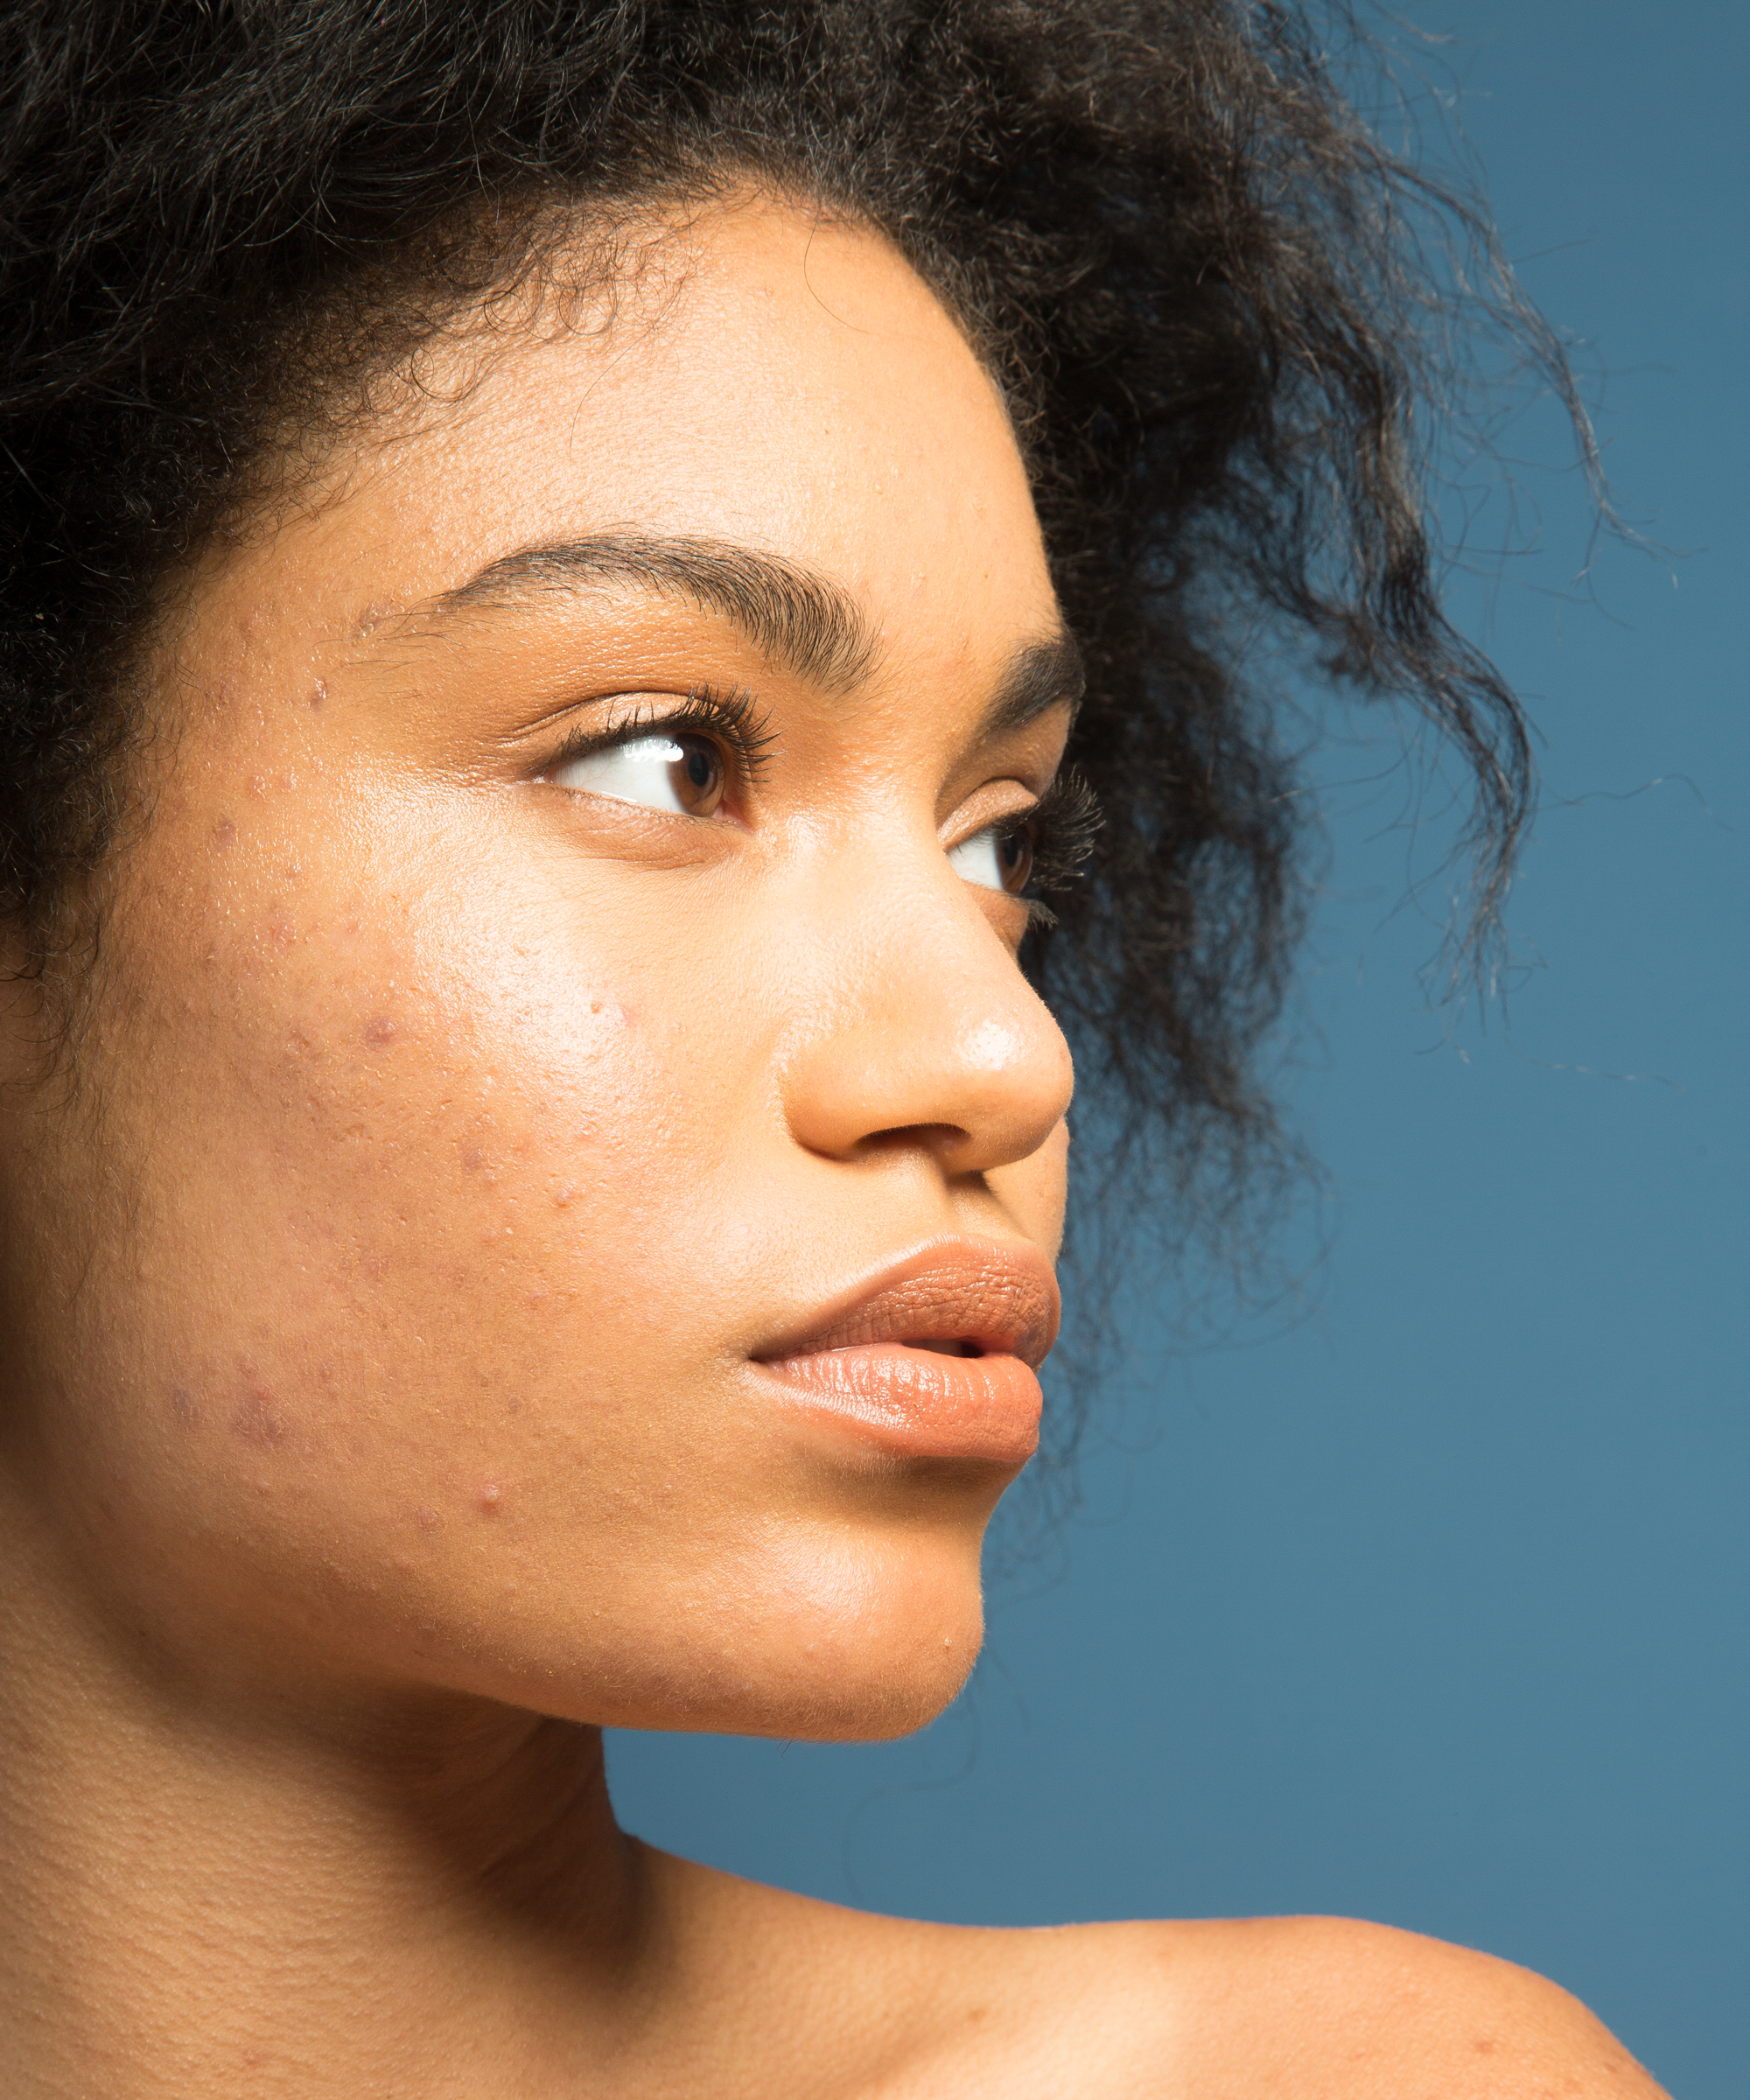 Black Skin Care Dermatologist Red Flags Need To Know